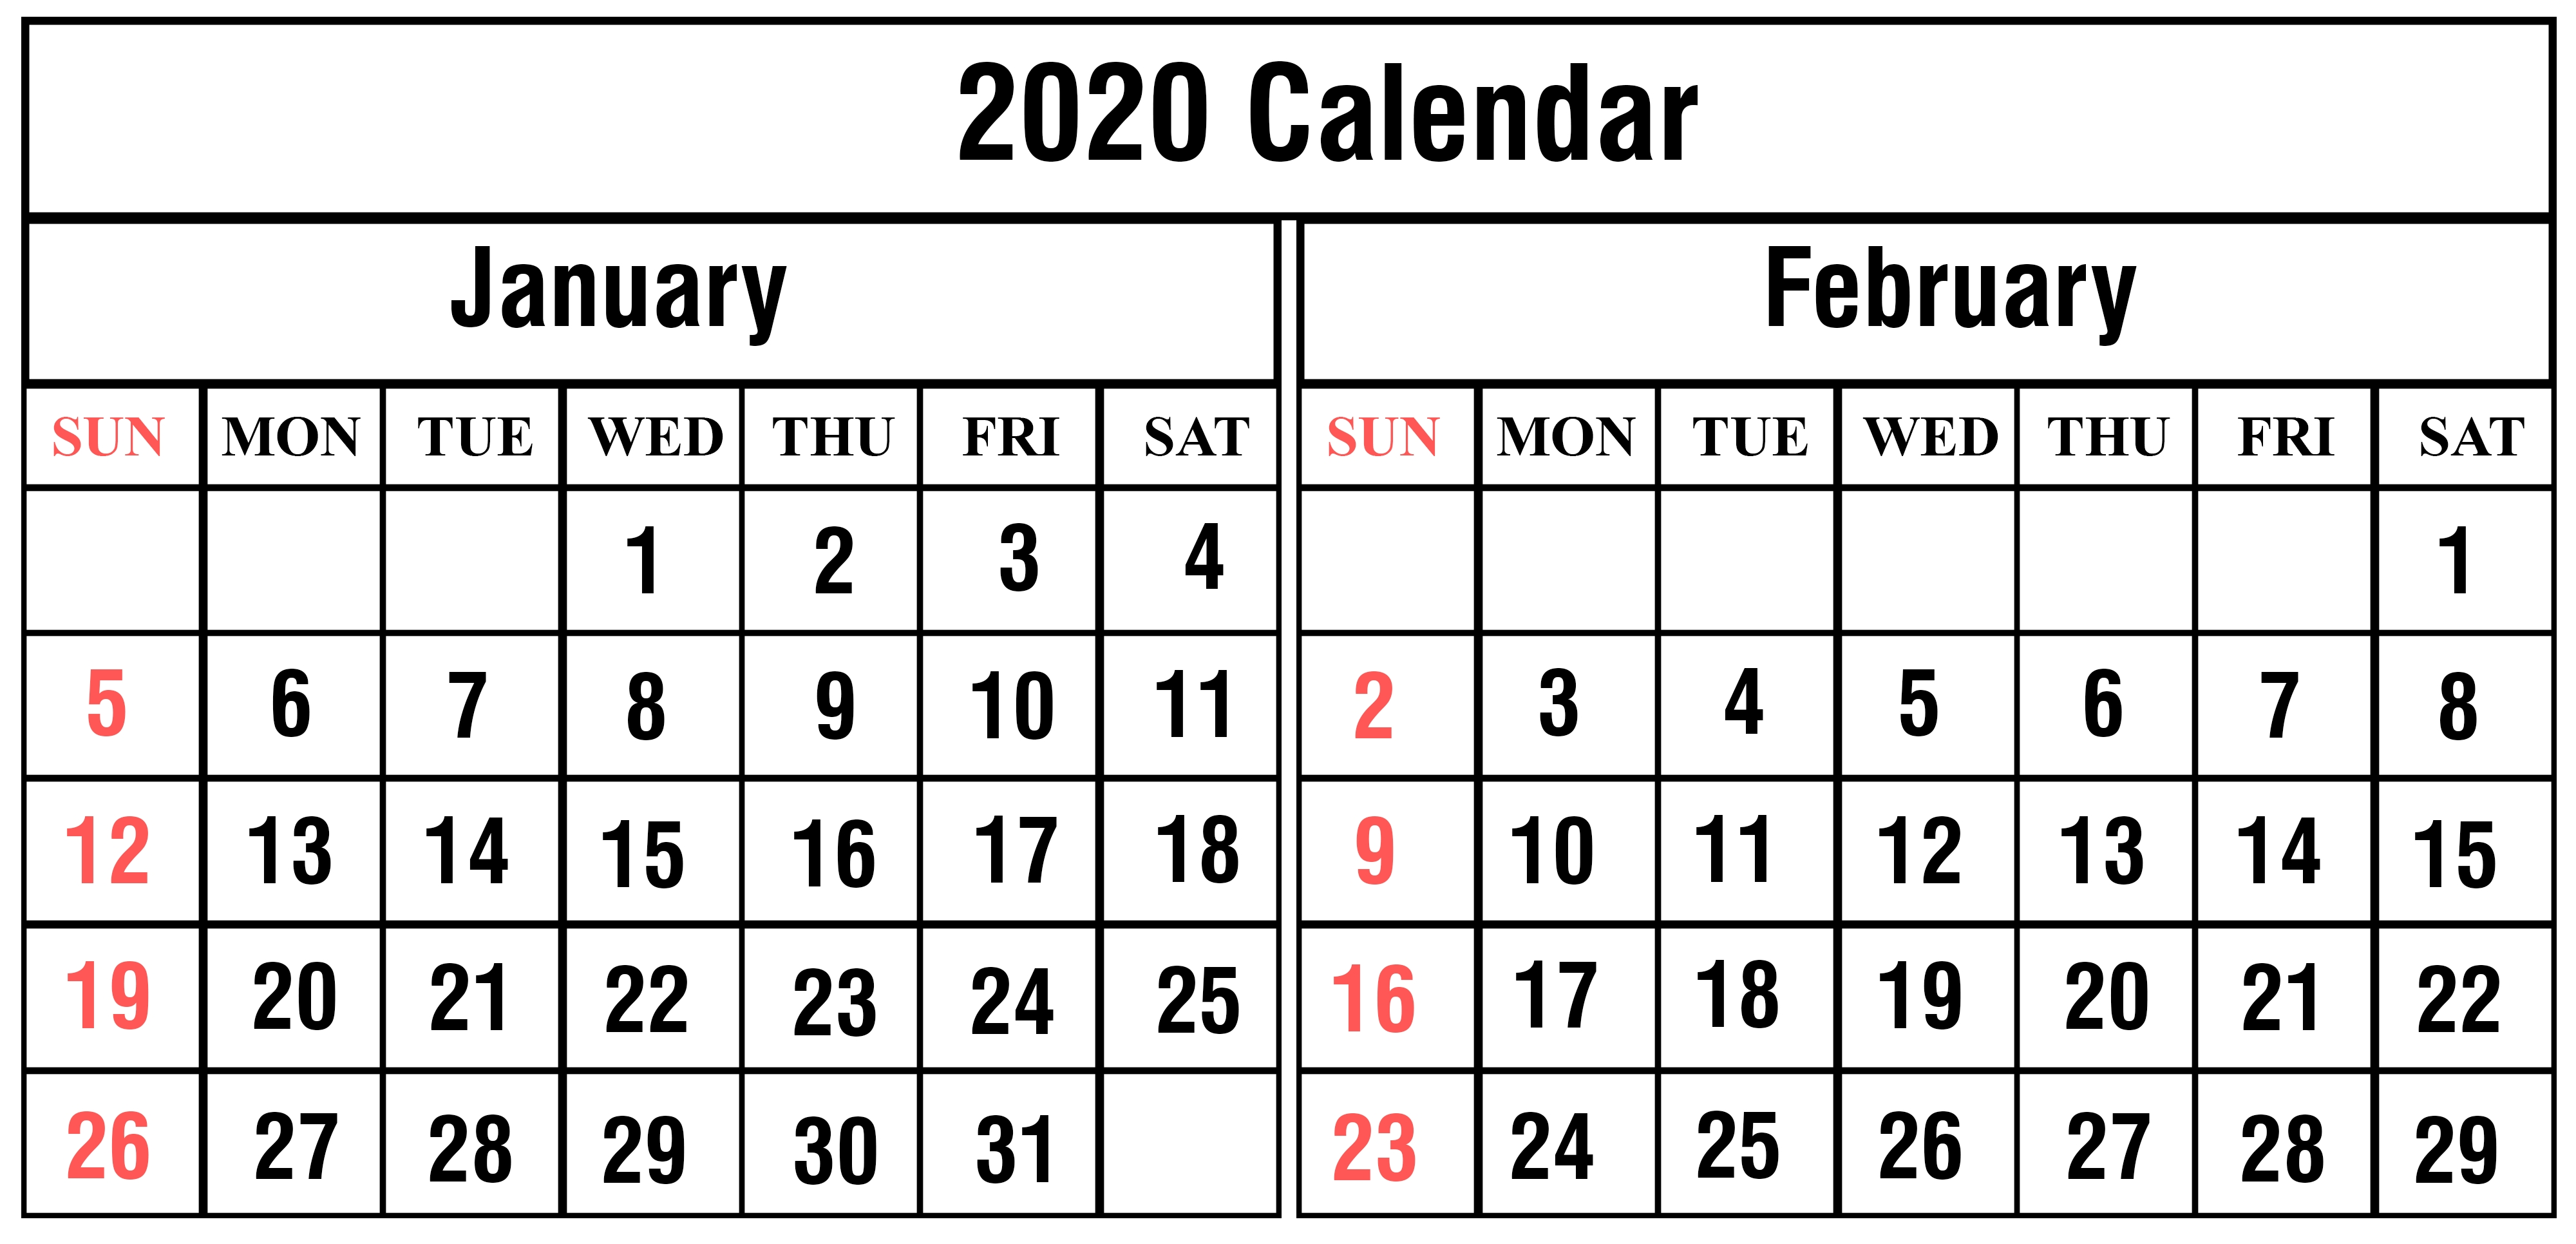 January February 2020 Calendar Printable Template Pdf Word-January February 2020 Calendar